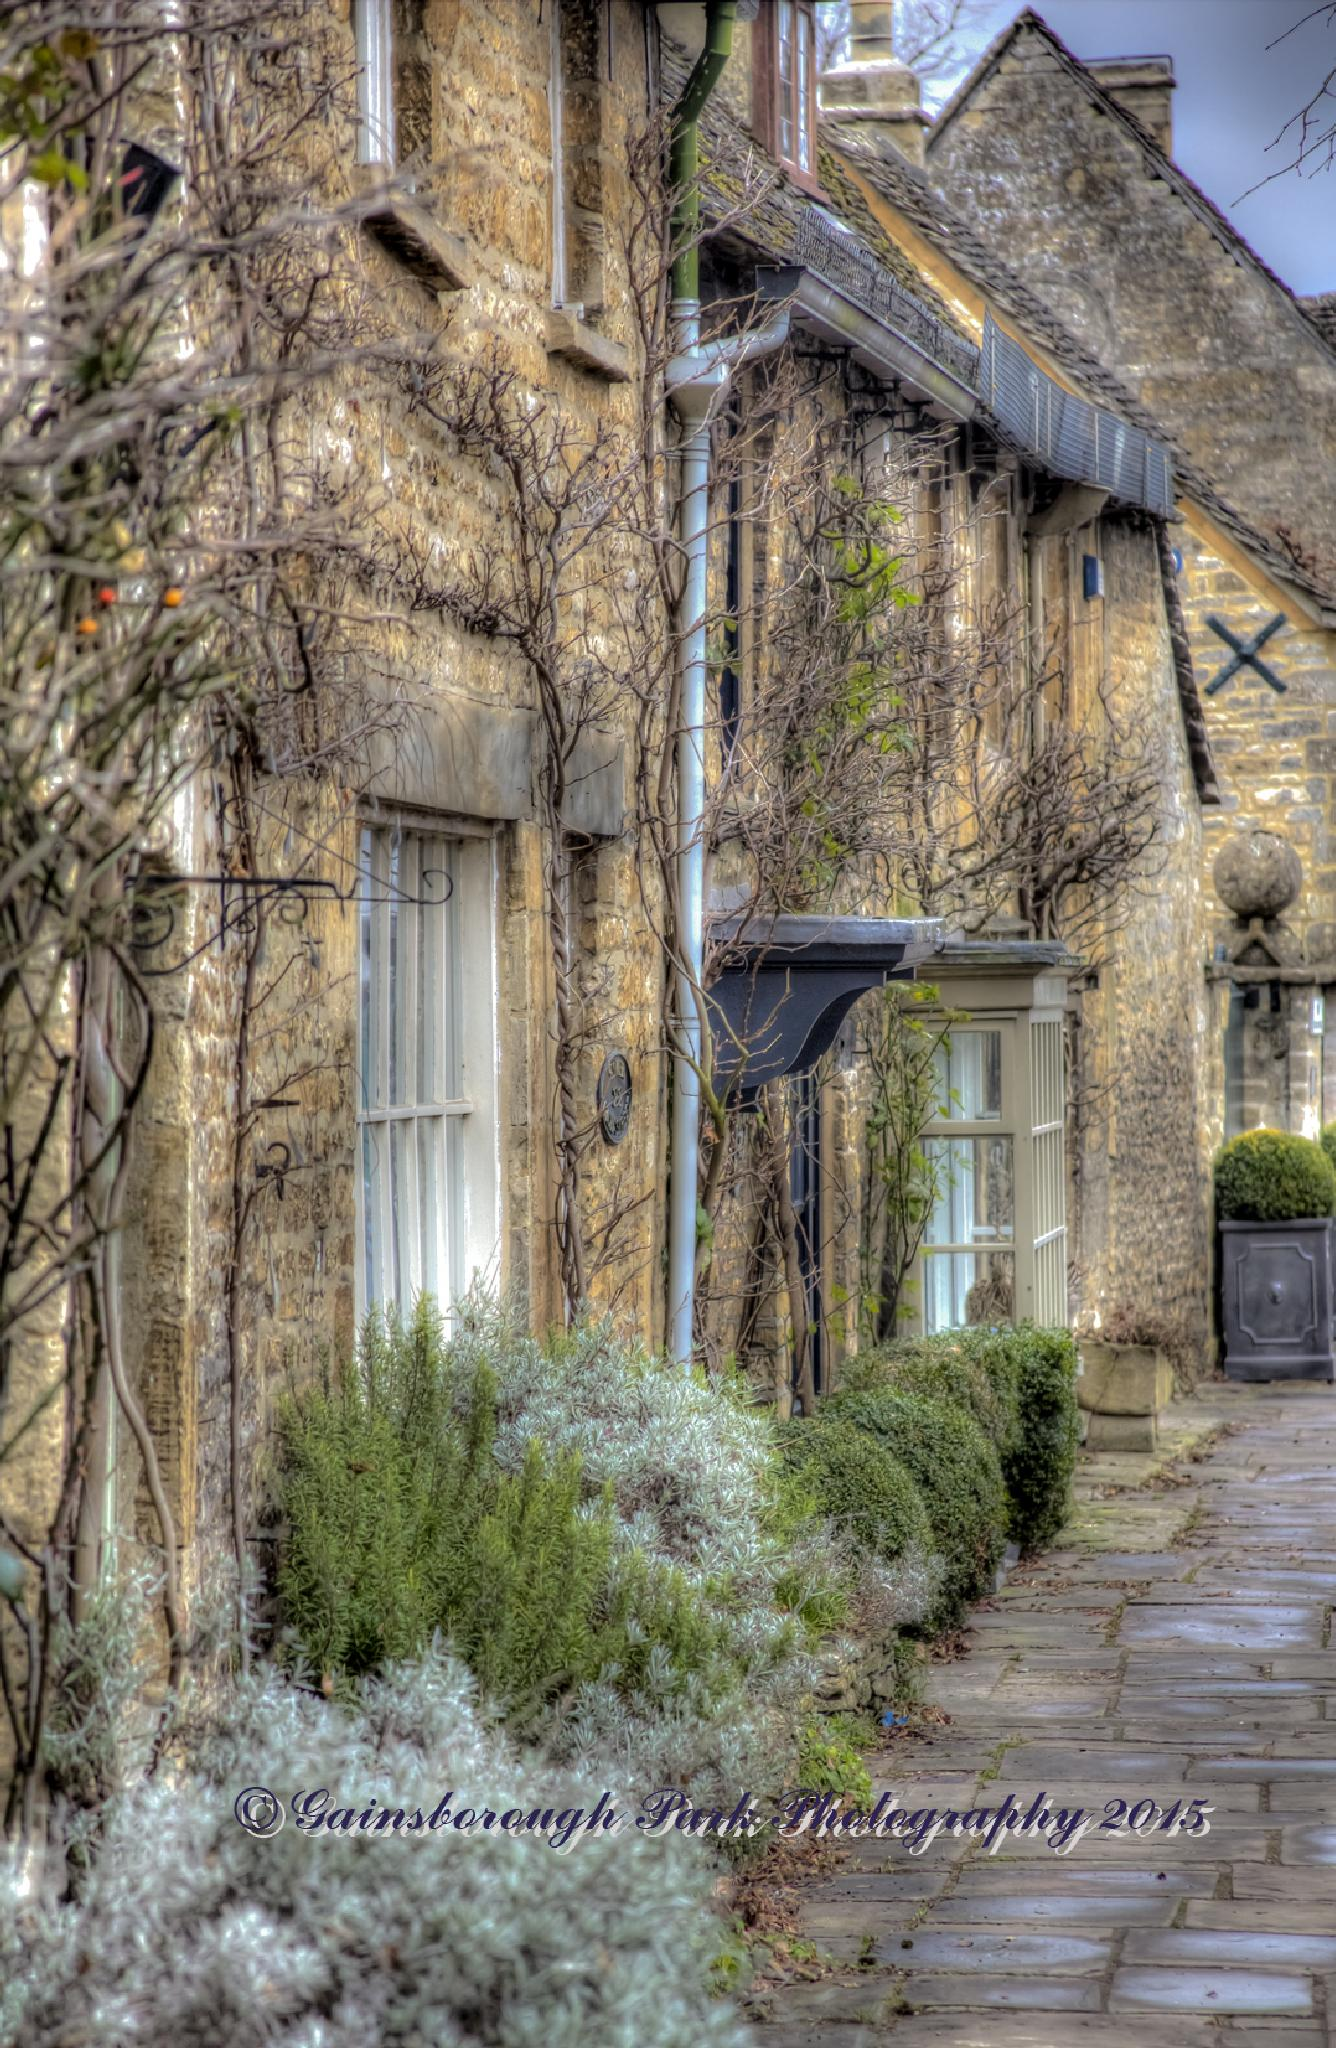 Burford by Gainsborough Park Photography